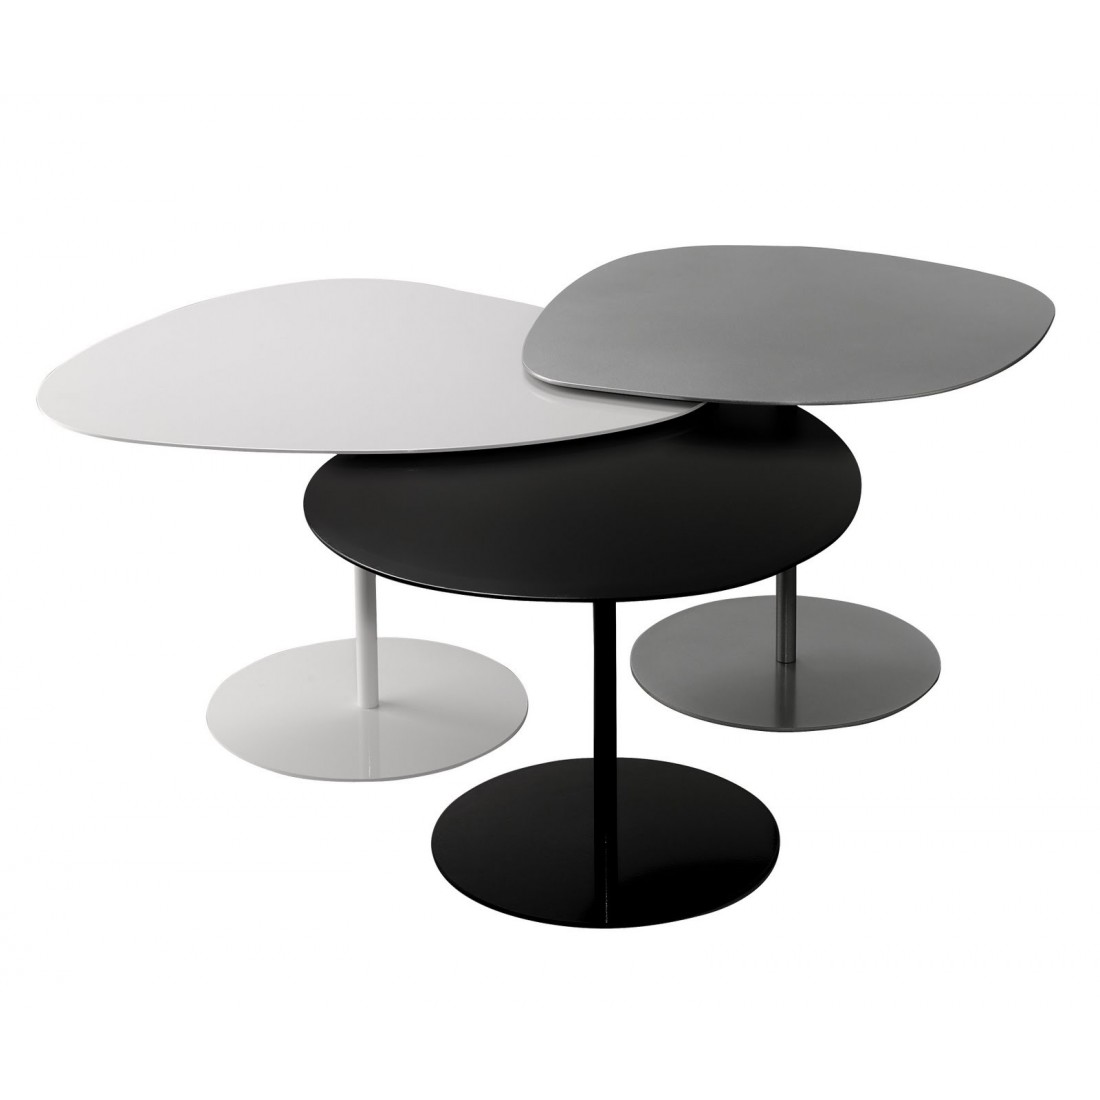 Tables basse galets en aluminium lot de 3 mati re grise - Table basse modulable pas cher ...